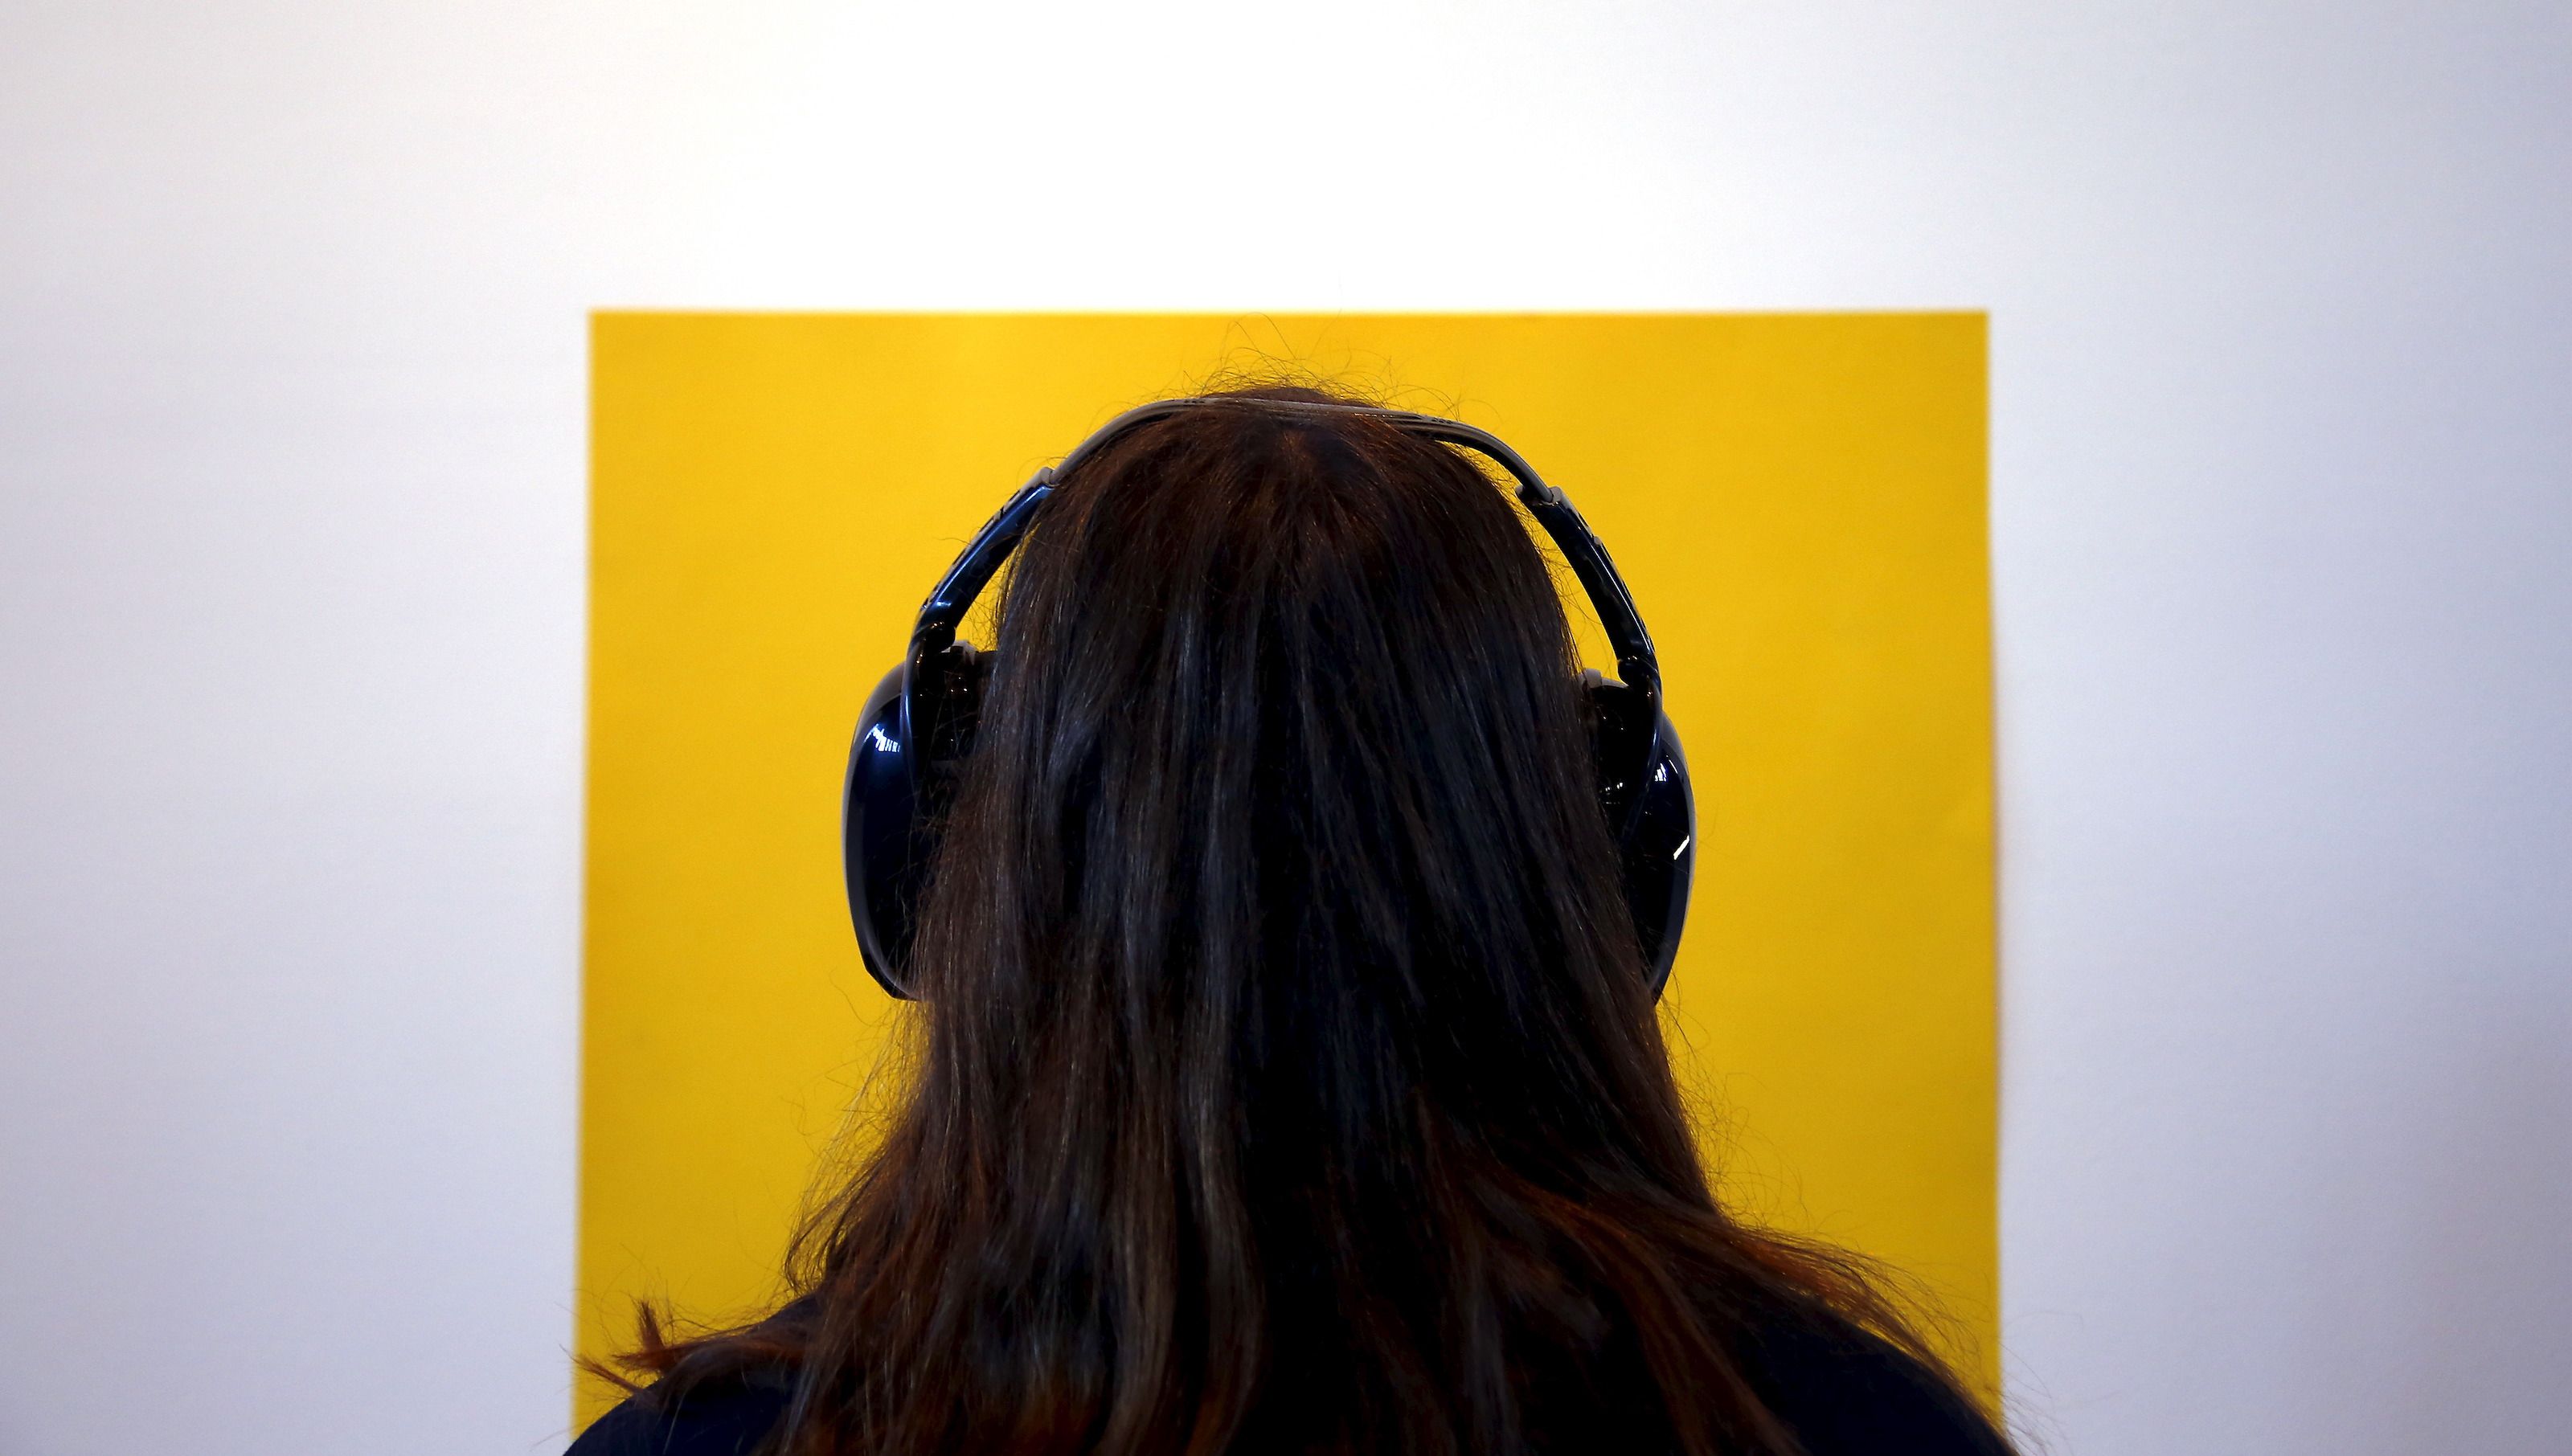 "A visitor wearing noise-cancelling headphones looks at a yellow piece of paper stuck to a wall as she tours the latest project by performance artist Marina Abramovic titled ""Marina Abramovic: In Residence"" on display as part of a public art project in Sydney, Australia June 23, 2015. The project involves visitors being a part of the artwork, making them perform exercises, complete tasks and resting while wearing noise-cancelling headphones. REUTERS/David Gray ATTENTION EDITORS - FOR EDITORIAL USE ONLY. NOT FOR SALE FOR MARKETING OR ADVERTISING CAMPAIGNS.  - RTX1HNZN"